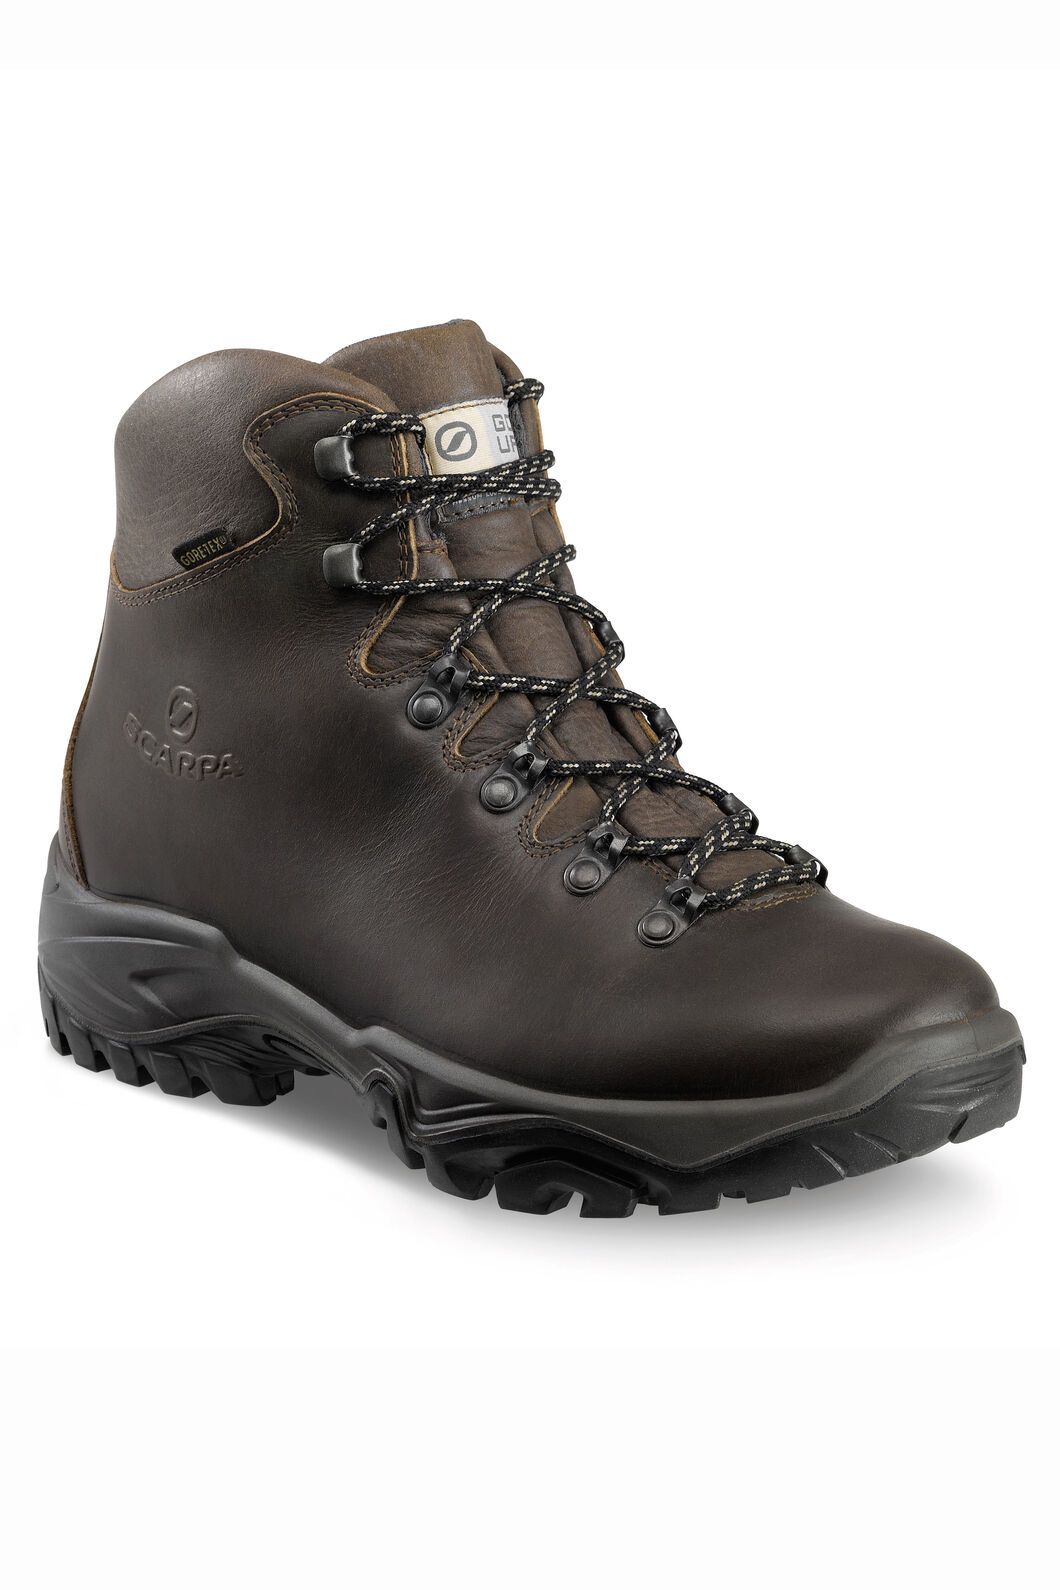 Scarpa Terra GTX Boots - Women's, Brown, hi-res